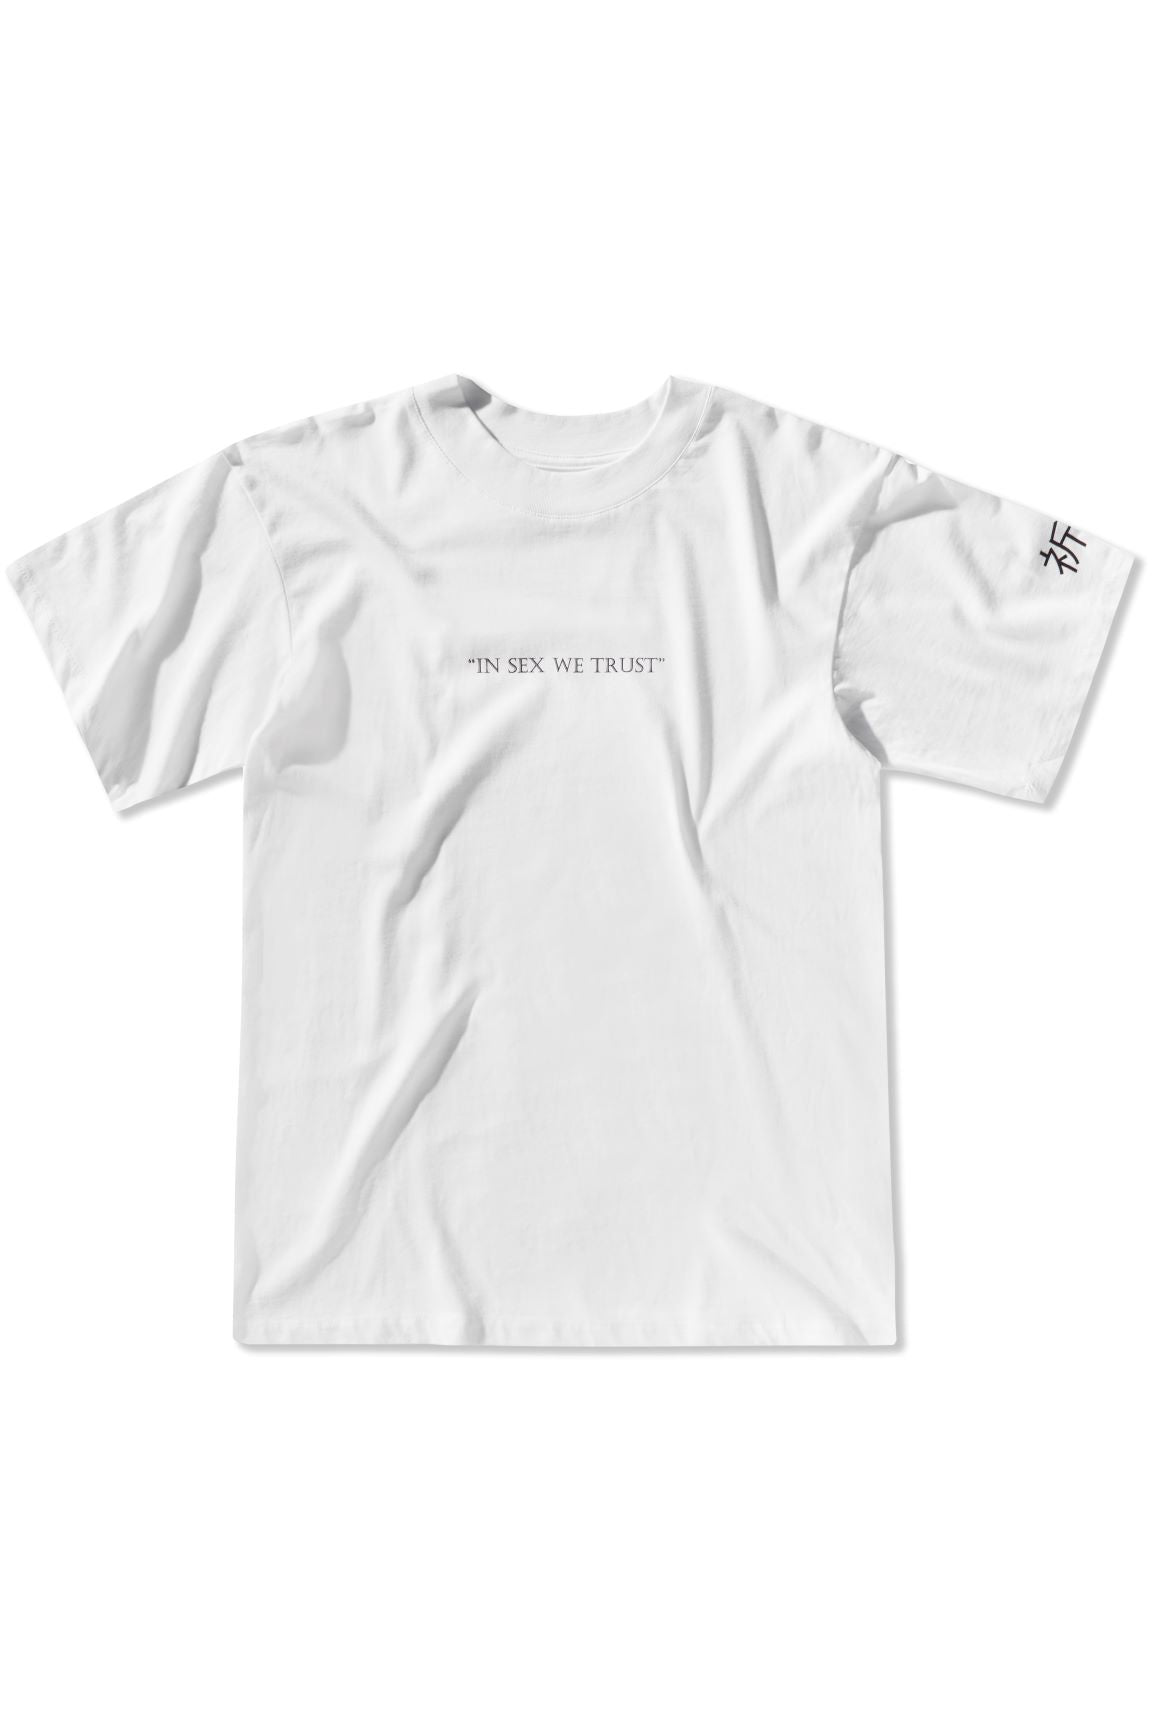 In Sex We Trust T Shirt